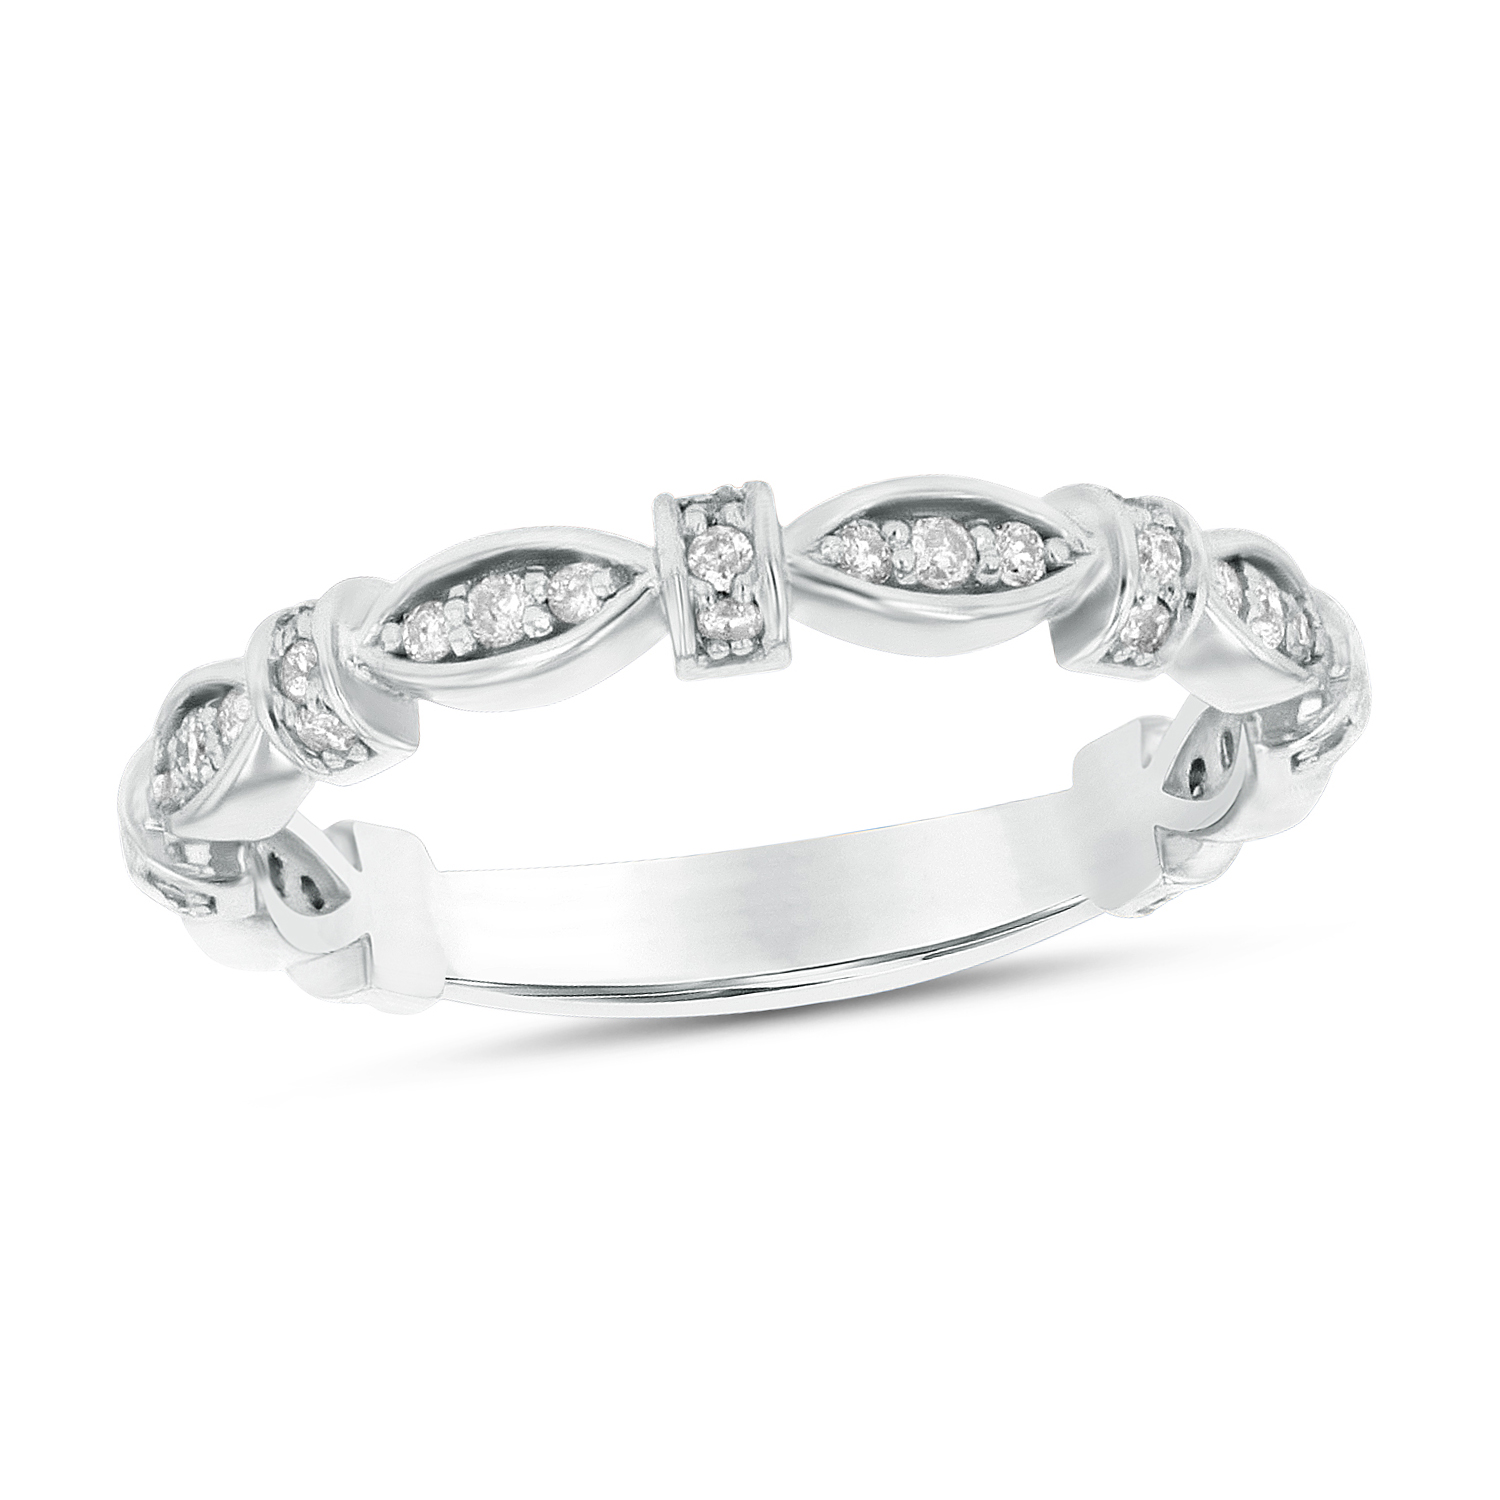 View 0.22ctw Diamond Band in 14k Gold